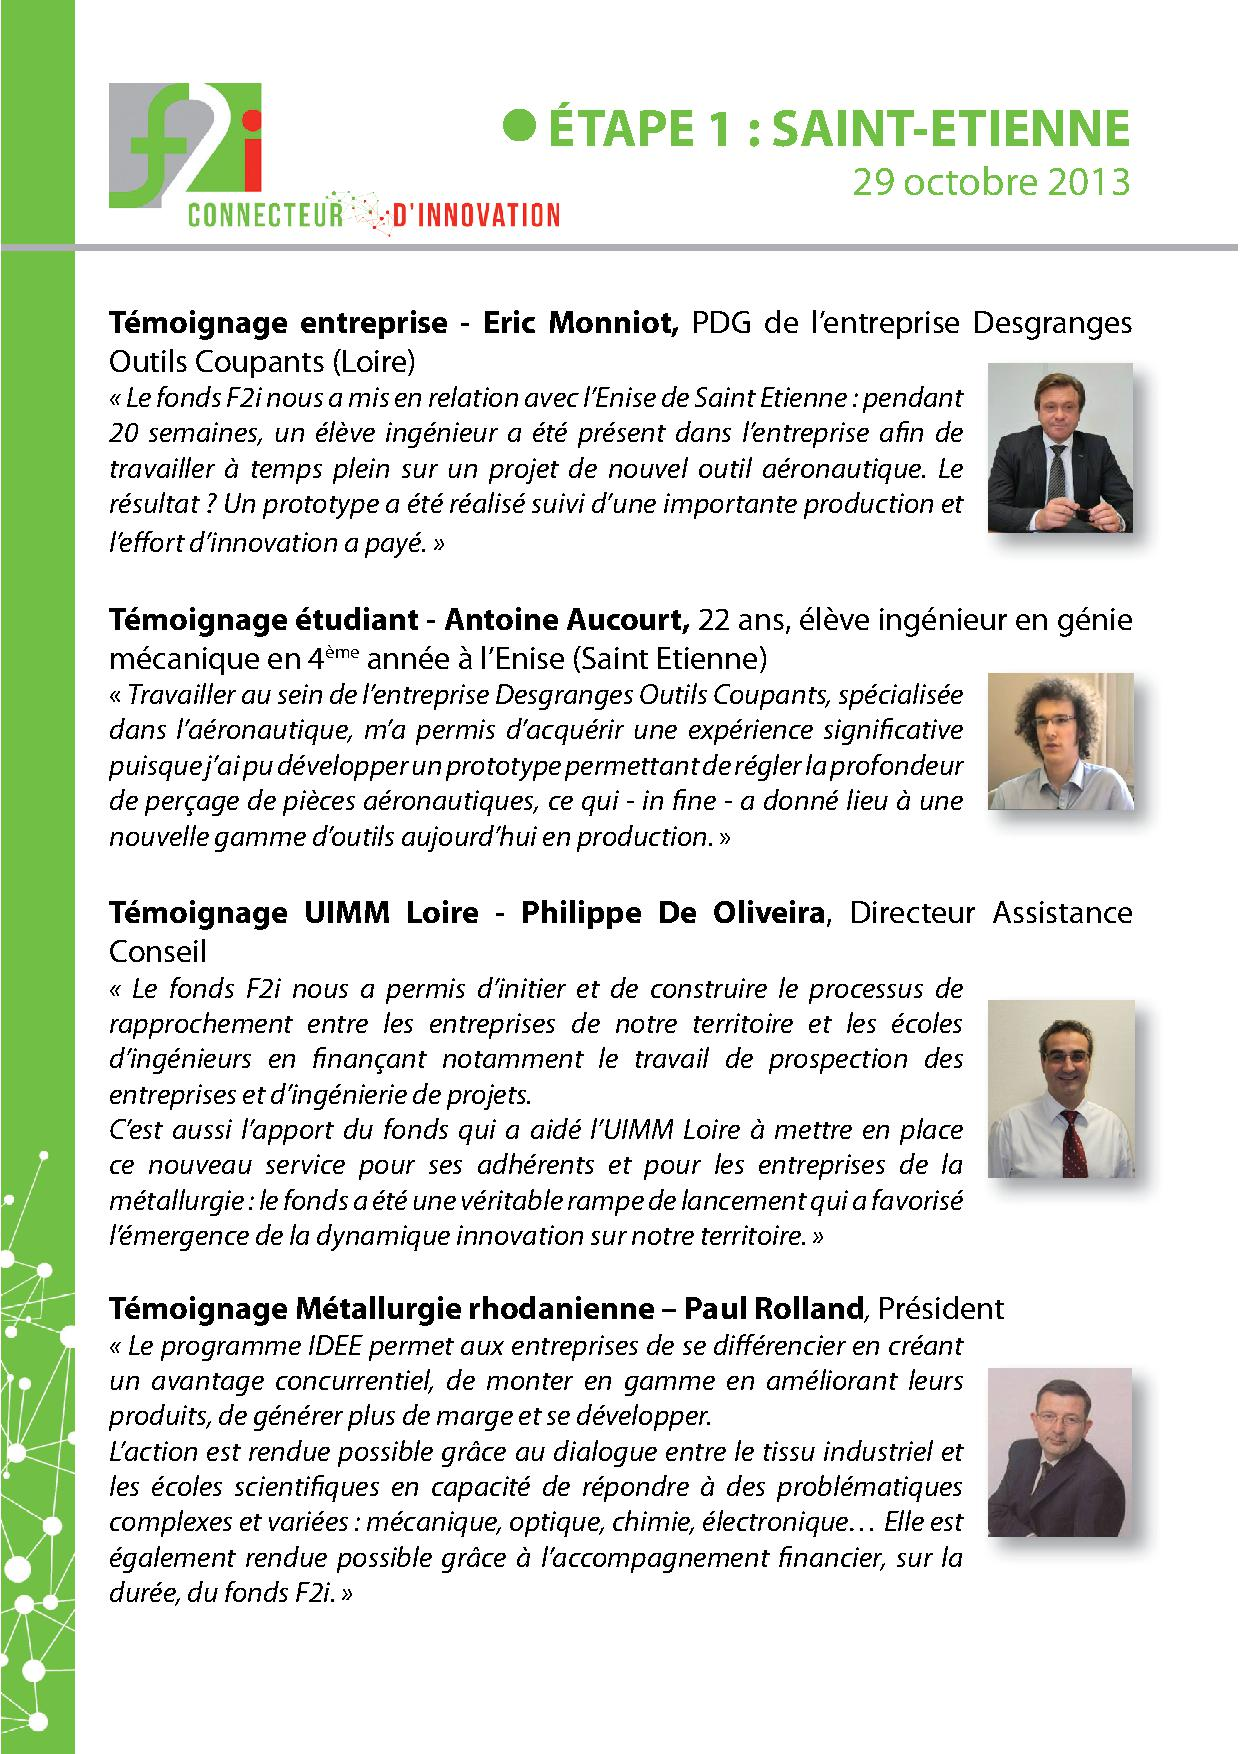 Témoignages Programme IDEE3 - F2i - UIMM - PERSPECTIVES